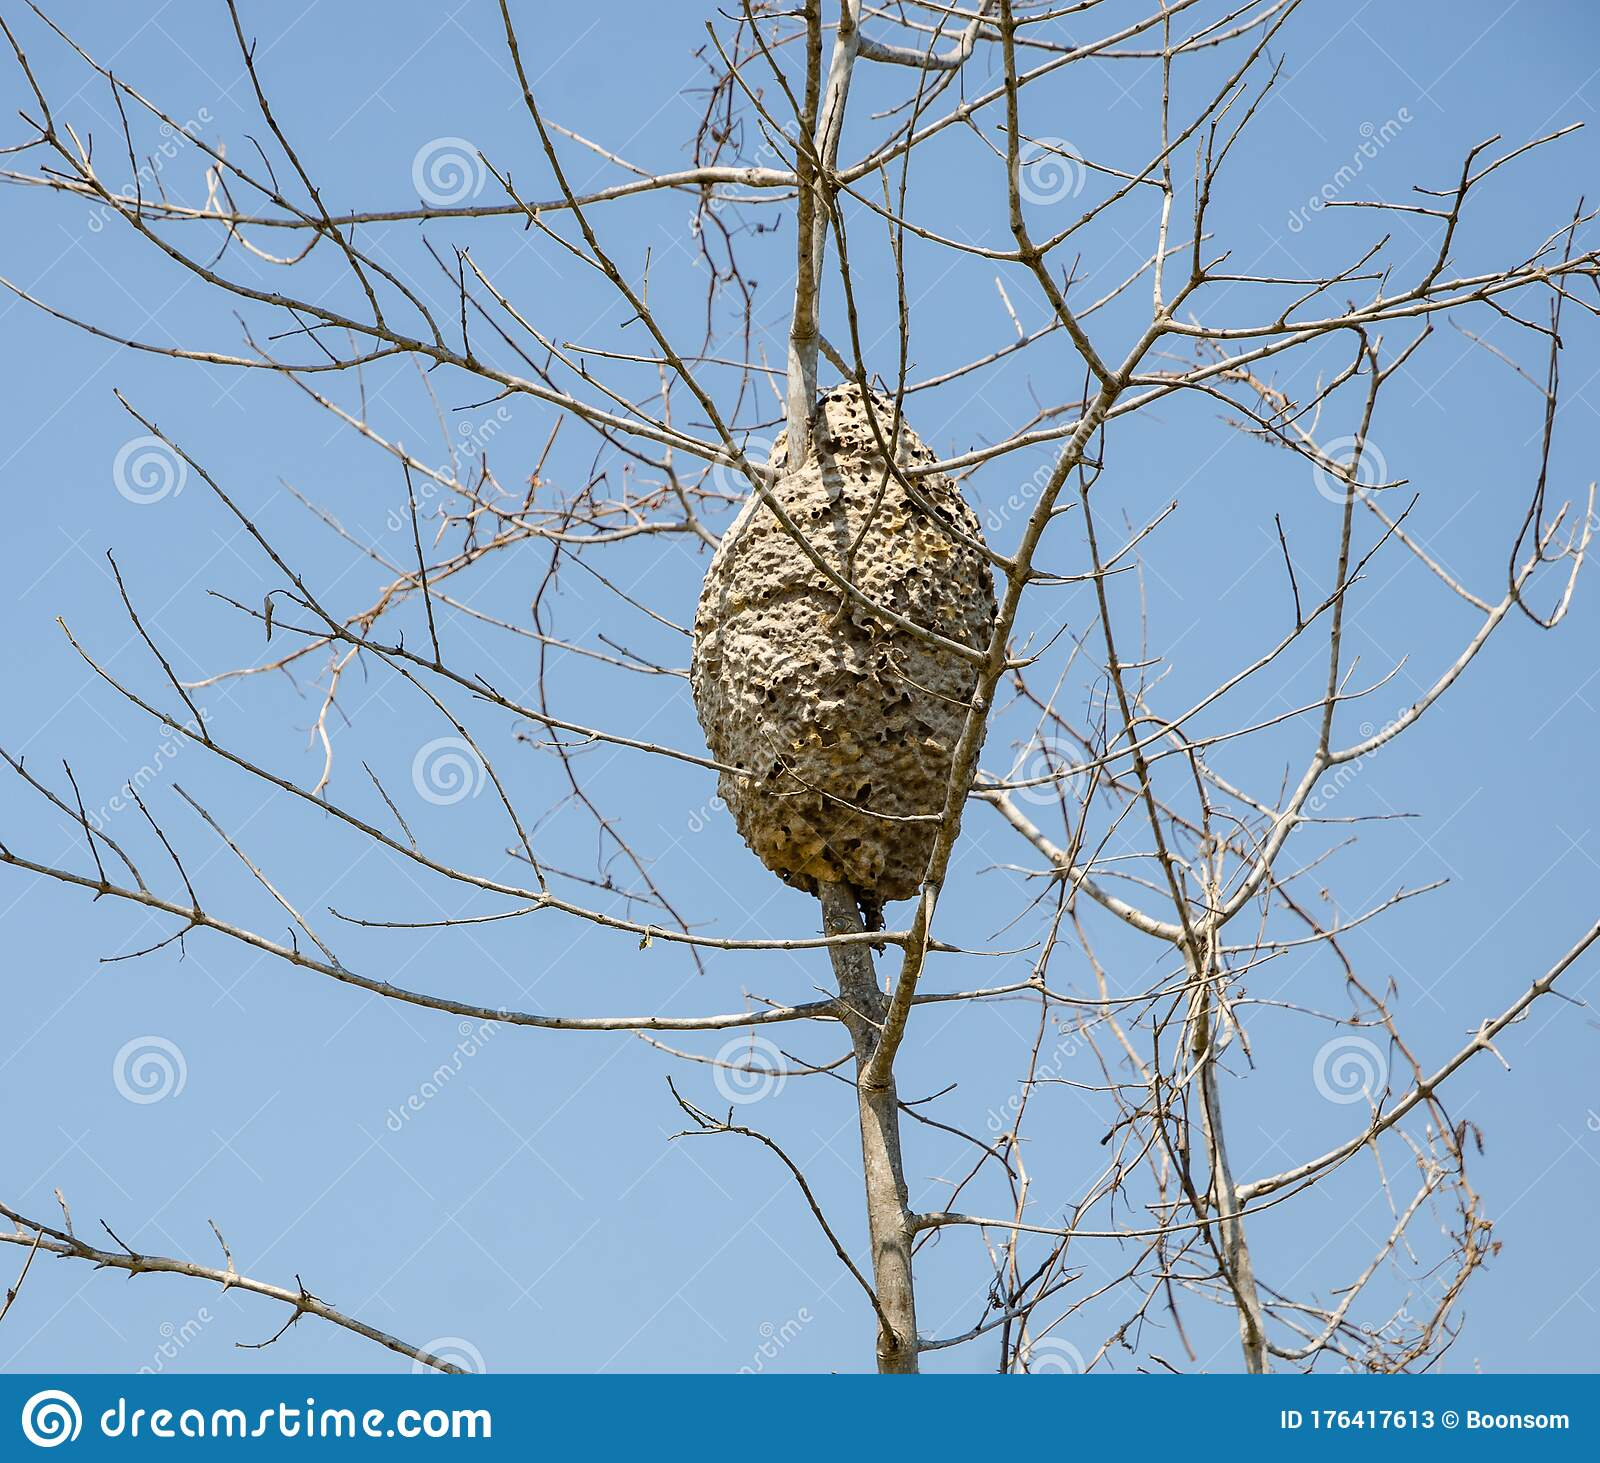 An Arboreal Termites Nest Covering Tree Trunk Stock Image Image Of Nest Closeup 176417613